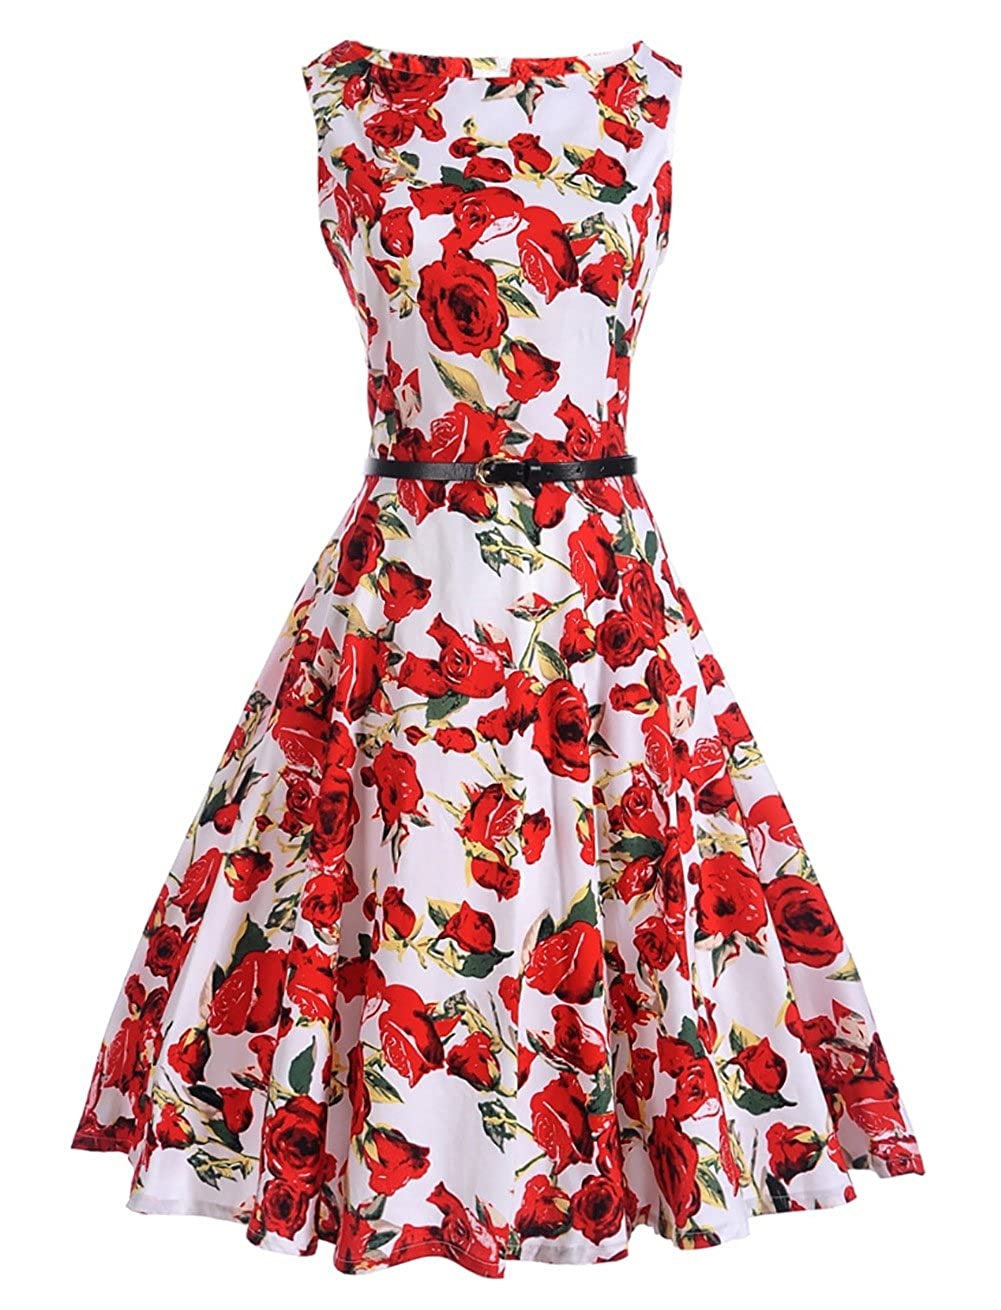 KOERIM Women's 1950s Scoop Vintage Retro Dress Rockabilly Party Swing Dress